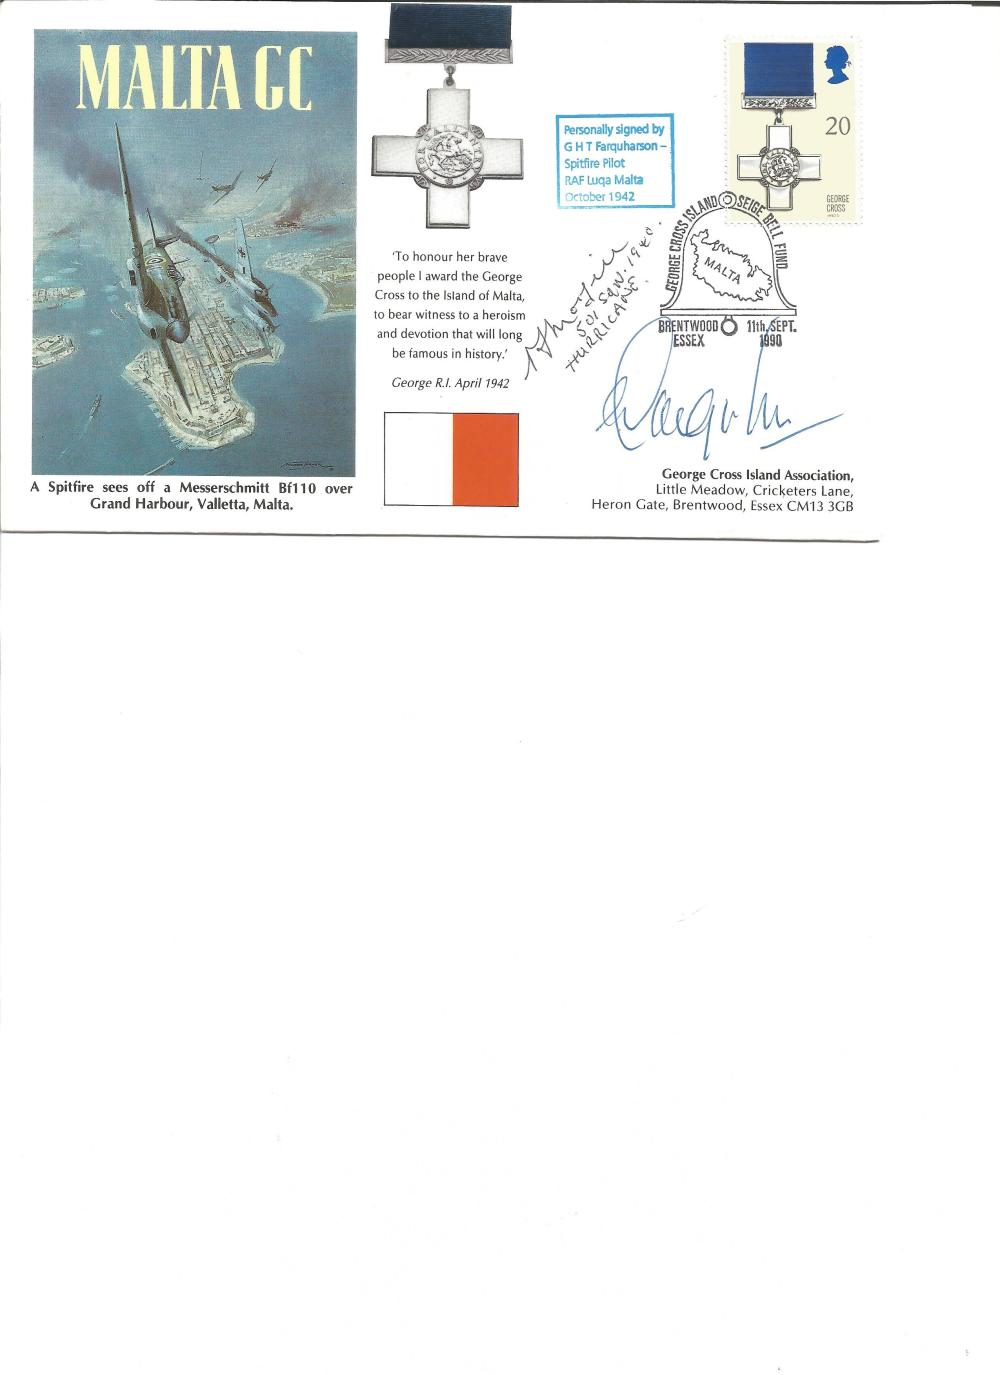 G H T Farquharson signed Malta GC Cover. Good Condition. All signed pieces come with a Certificate